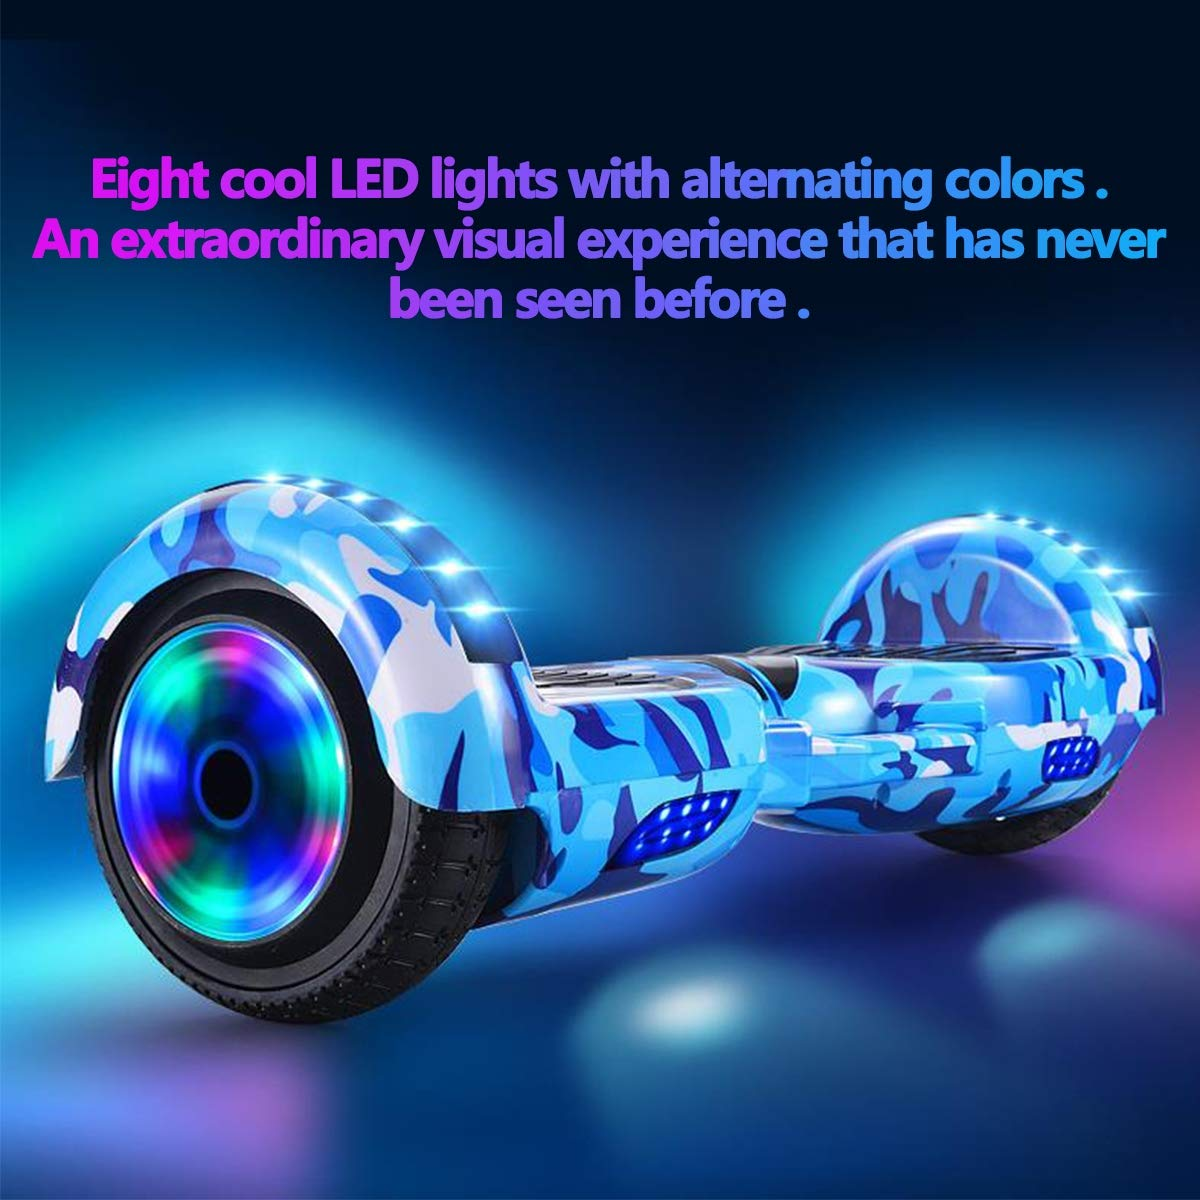 Built-in Bluetooth Speaker Style: Ice fire//350W//30000mah//15km//h LED Wheels Side Lights, Electric Smart Self Balancing Scooter Hoverboard